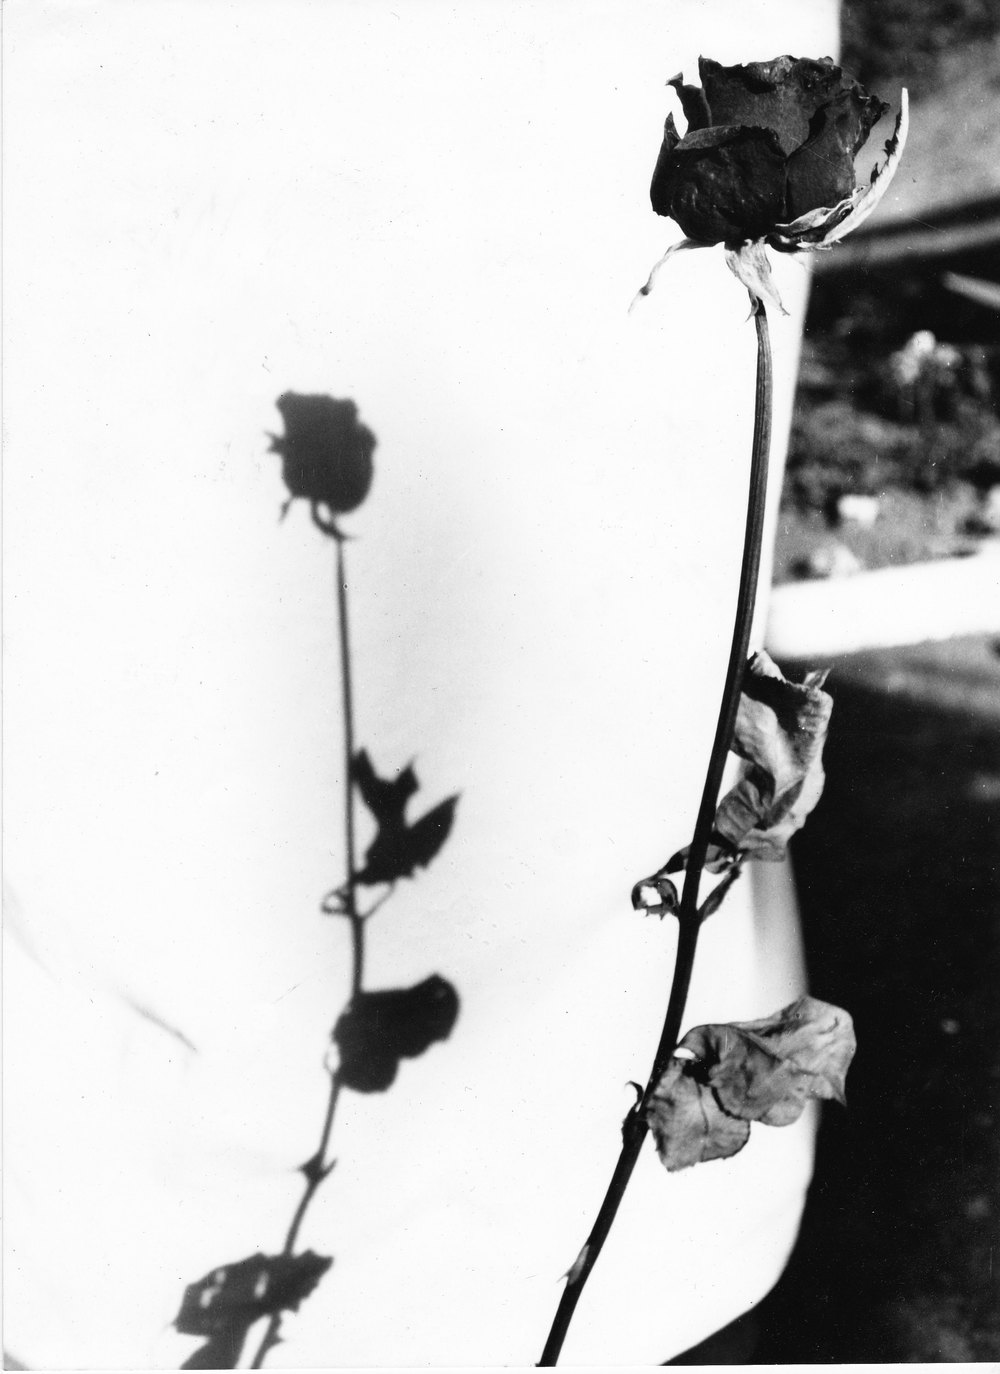 A dead rose. From the original promotional artwork. Photo by Torben Tilly